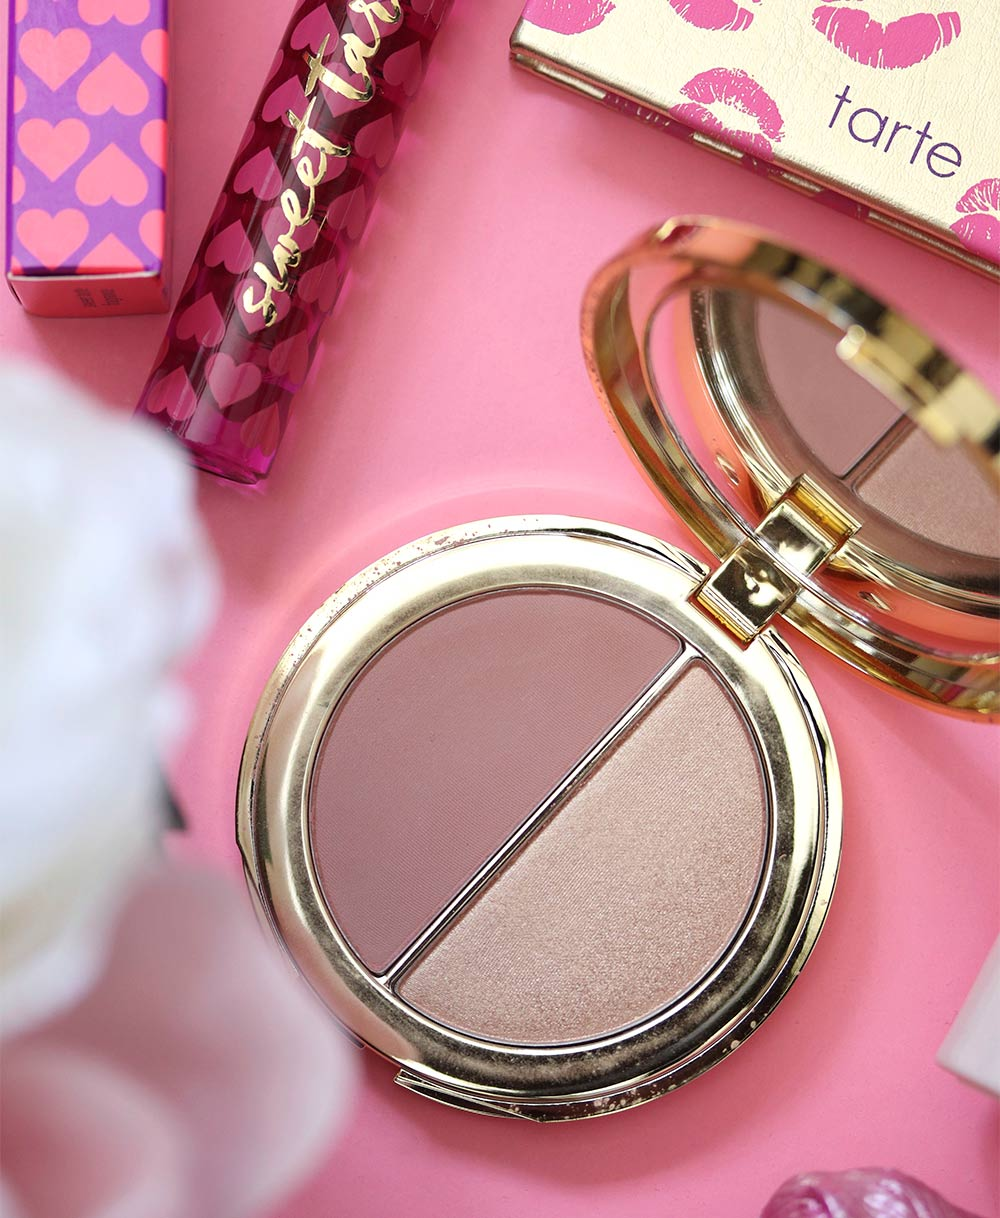 tarte rose gold blush glow